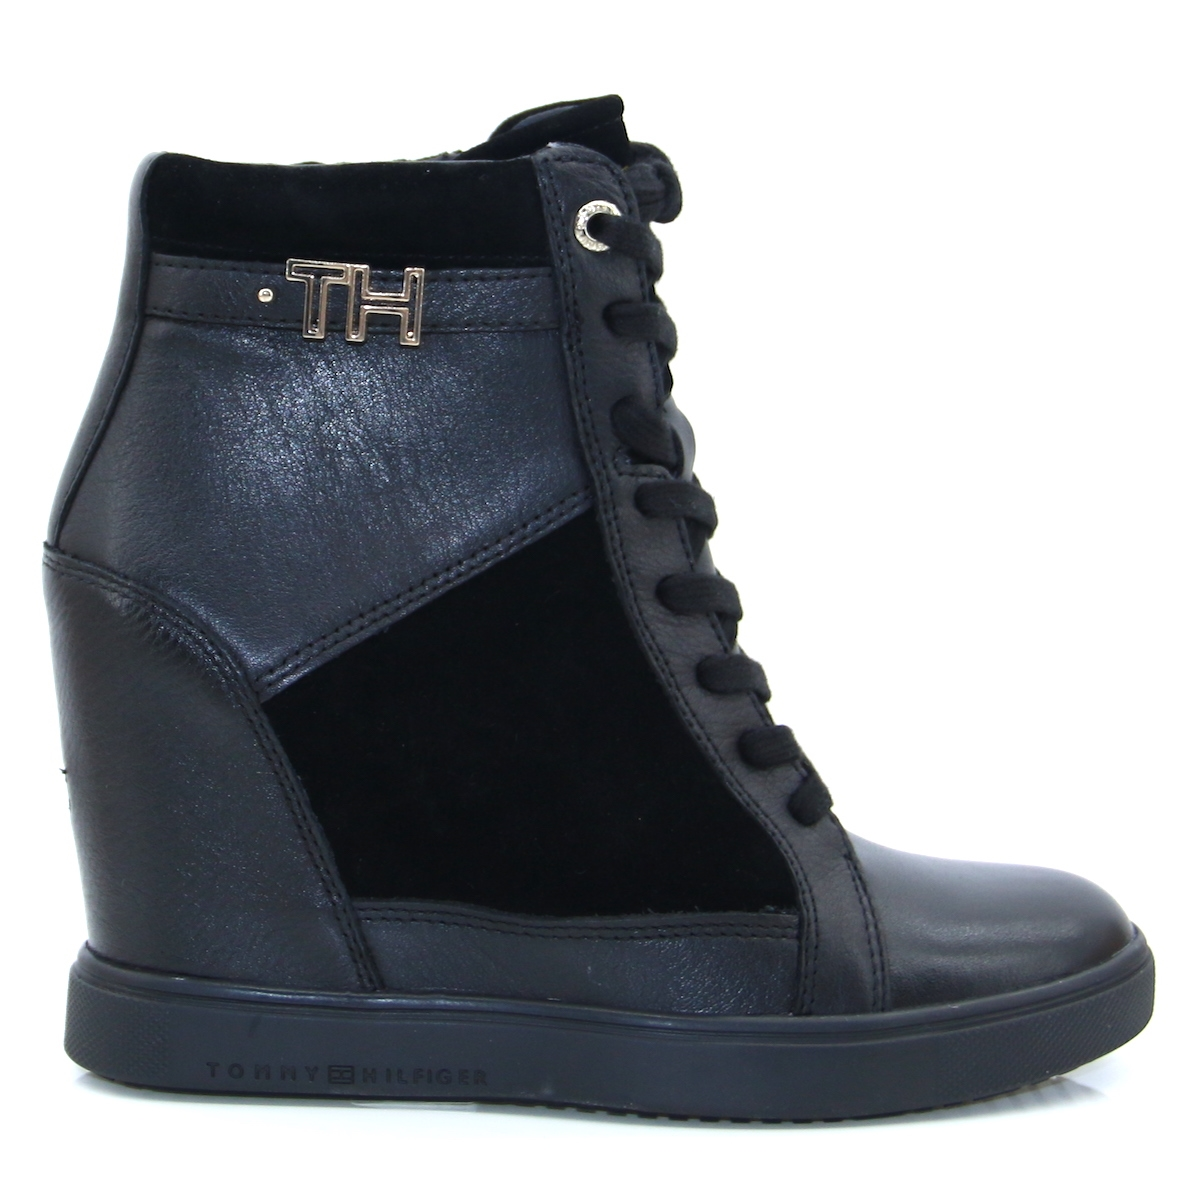 TH Hardware Wedge Boot - Tommy Hilfiger